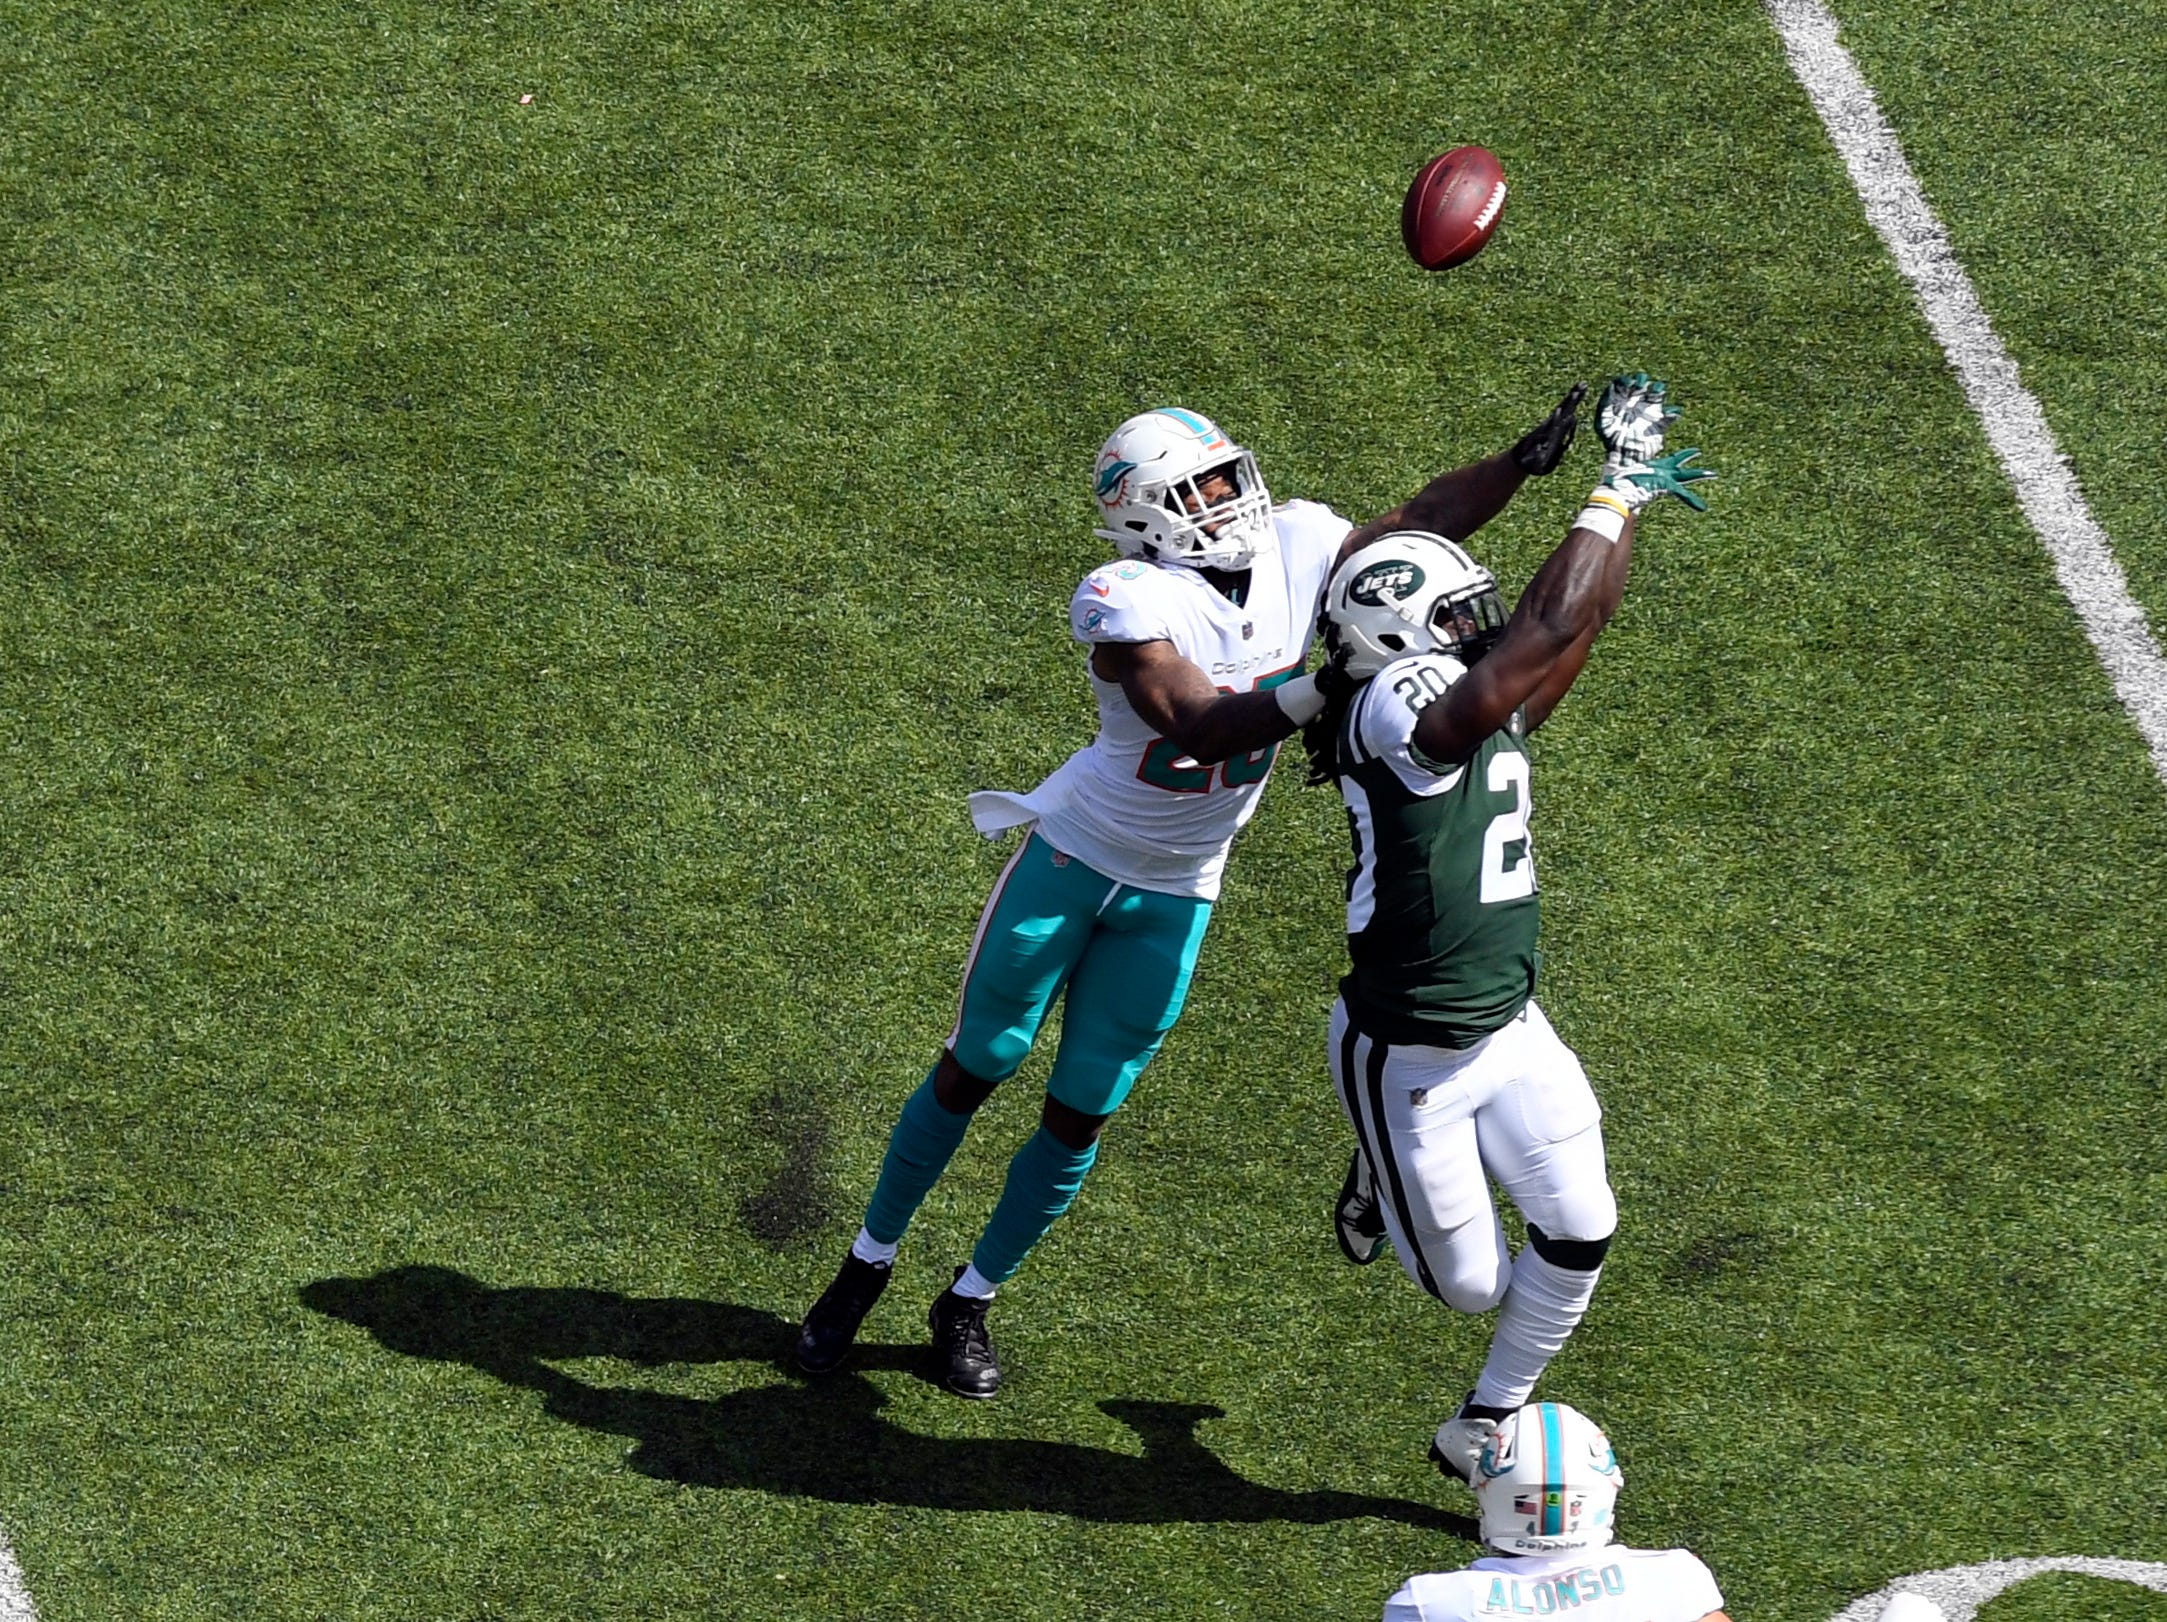 Miami Dolphins cornerback Xavien Howard (25) tips a pass intended for New York Jets running back Isaiah Crowell (20). The New York Jets lose to the Miami Dolphins 20-12 in Week 2 at MetLife Stadium in East Rutherford, NJ on Sunday, September 16, 2018.